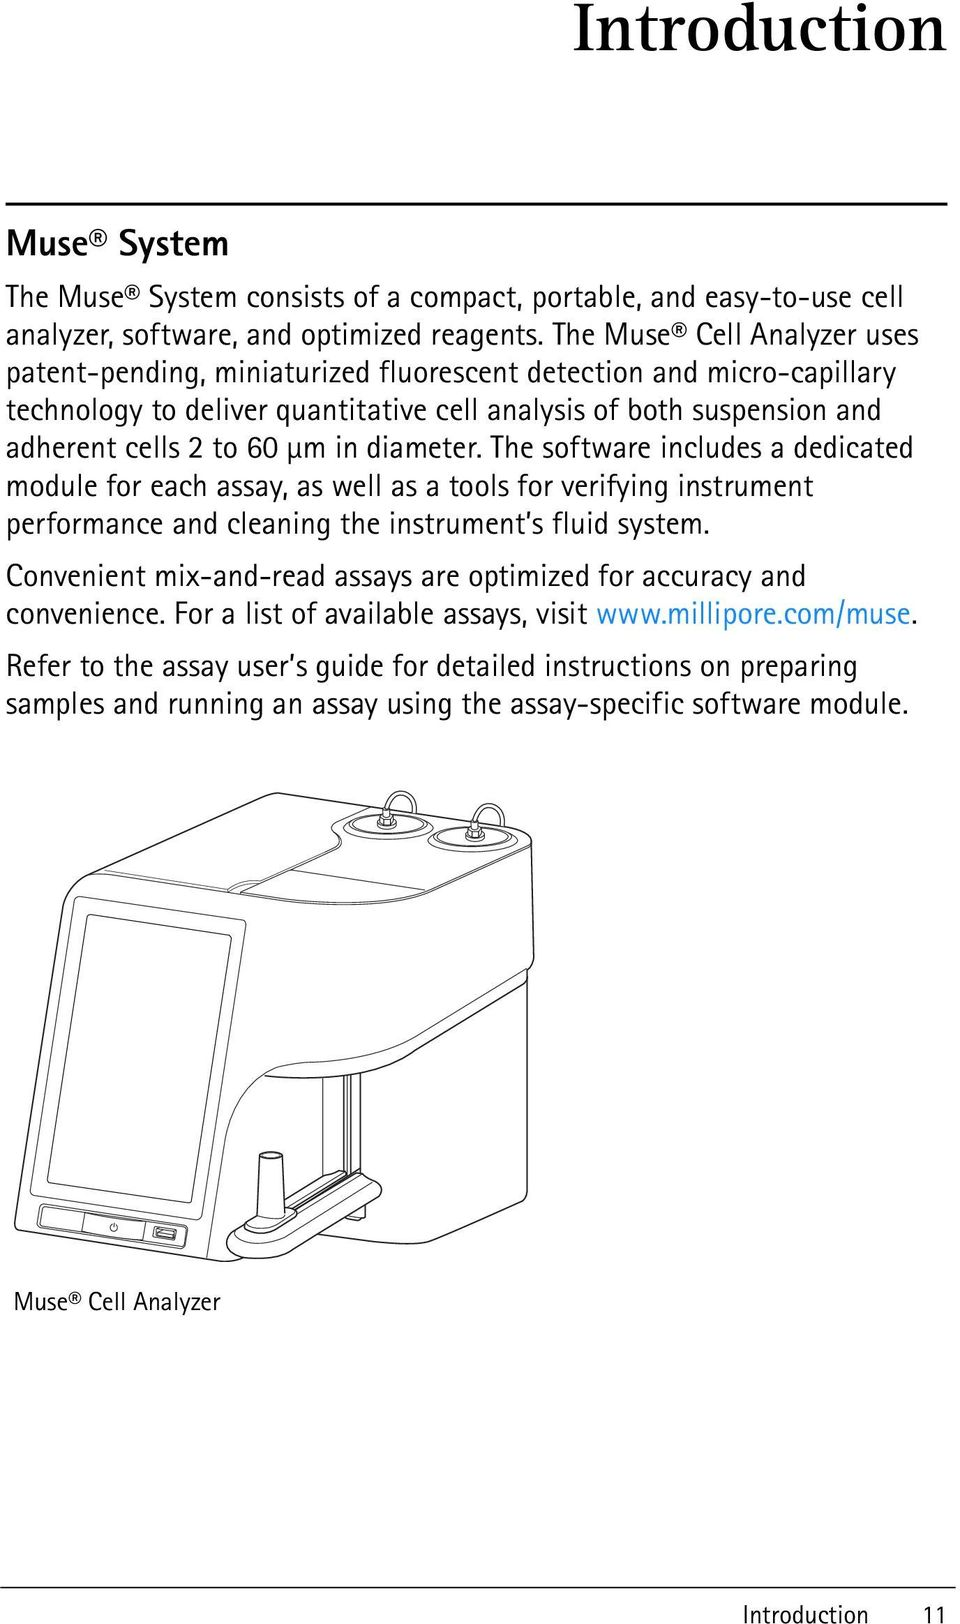 Muse Cell Analyzer  User s Guide  For Research Use Only